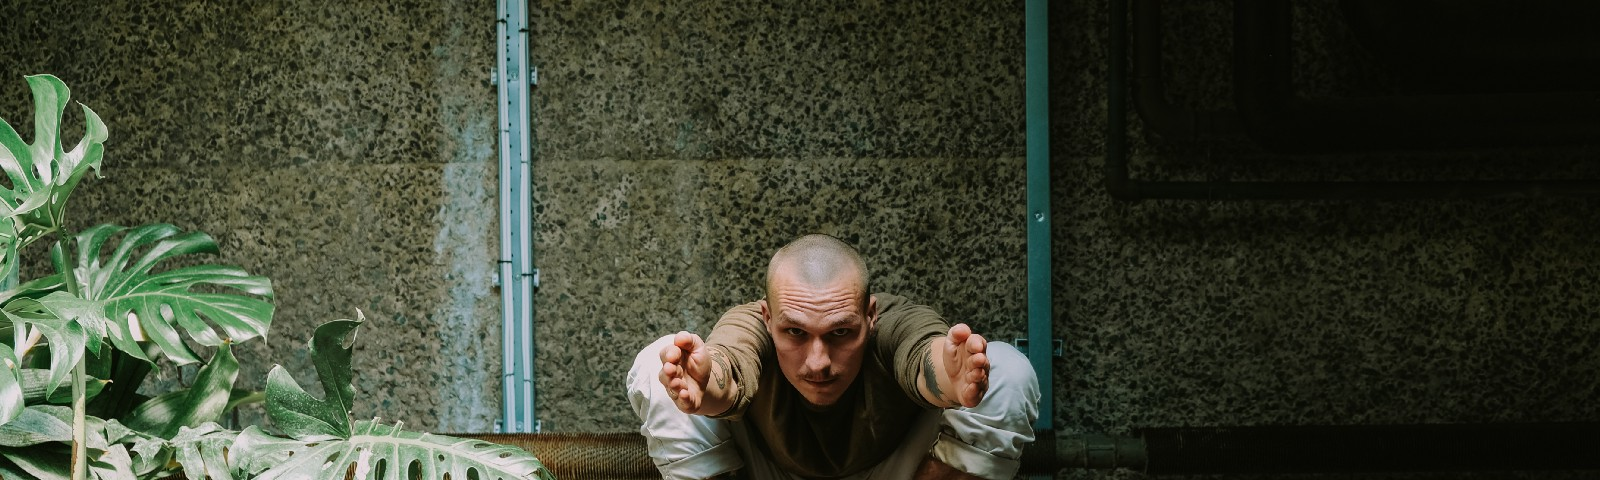 Man squatting in an advanced yoga pose, confronting the camera